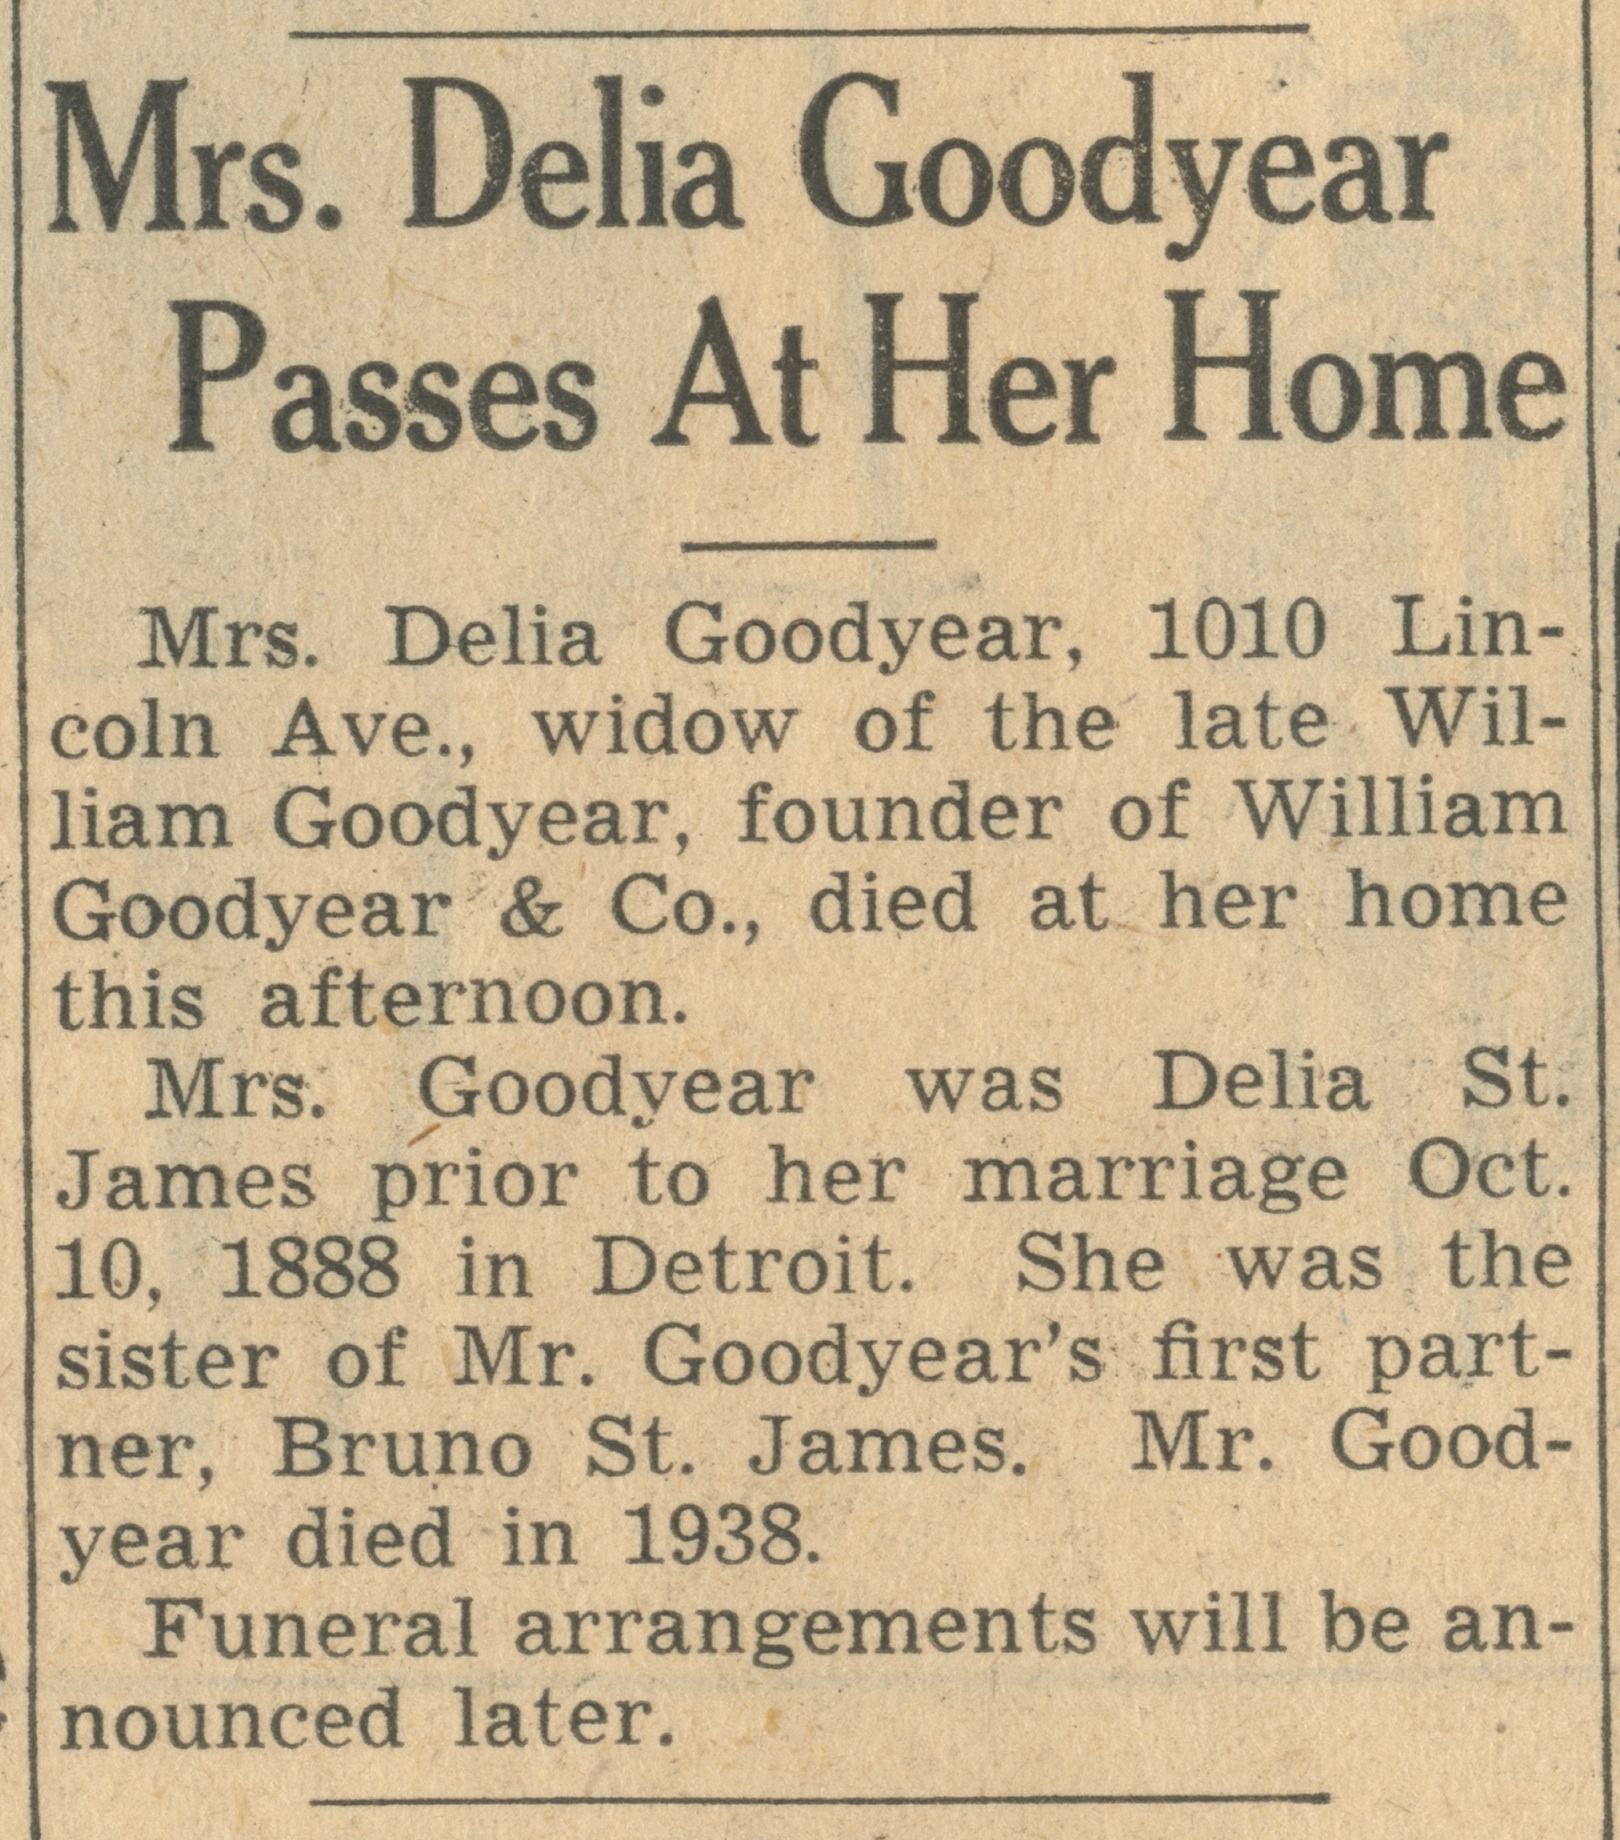 Mrs. Delia Goodyear Passes At Her Home image